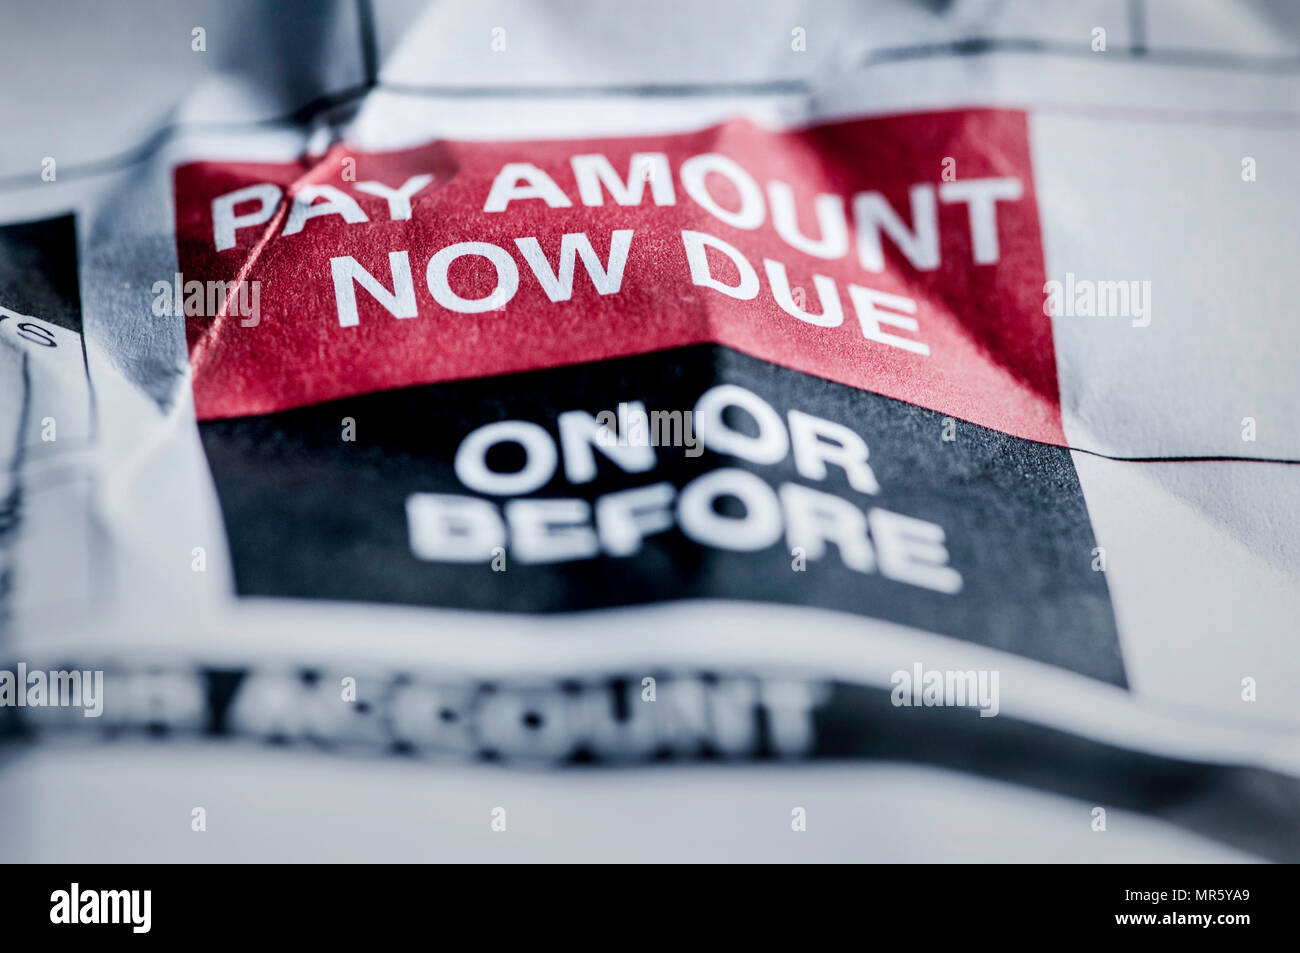 Consumer Credit Debt Payment Now Due - Stock Image